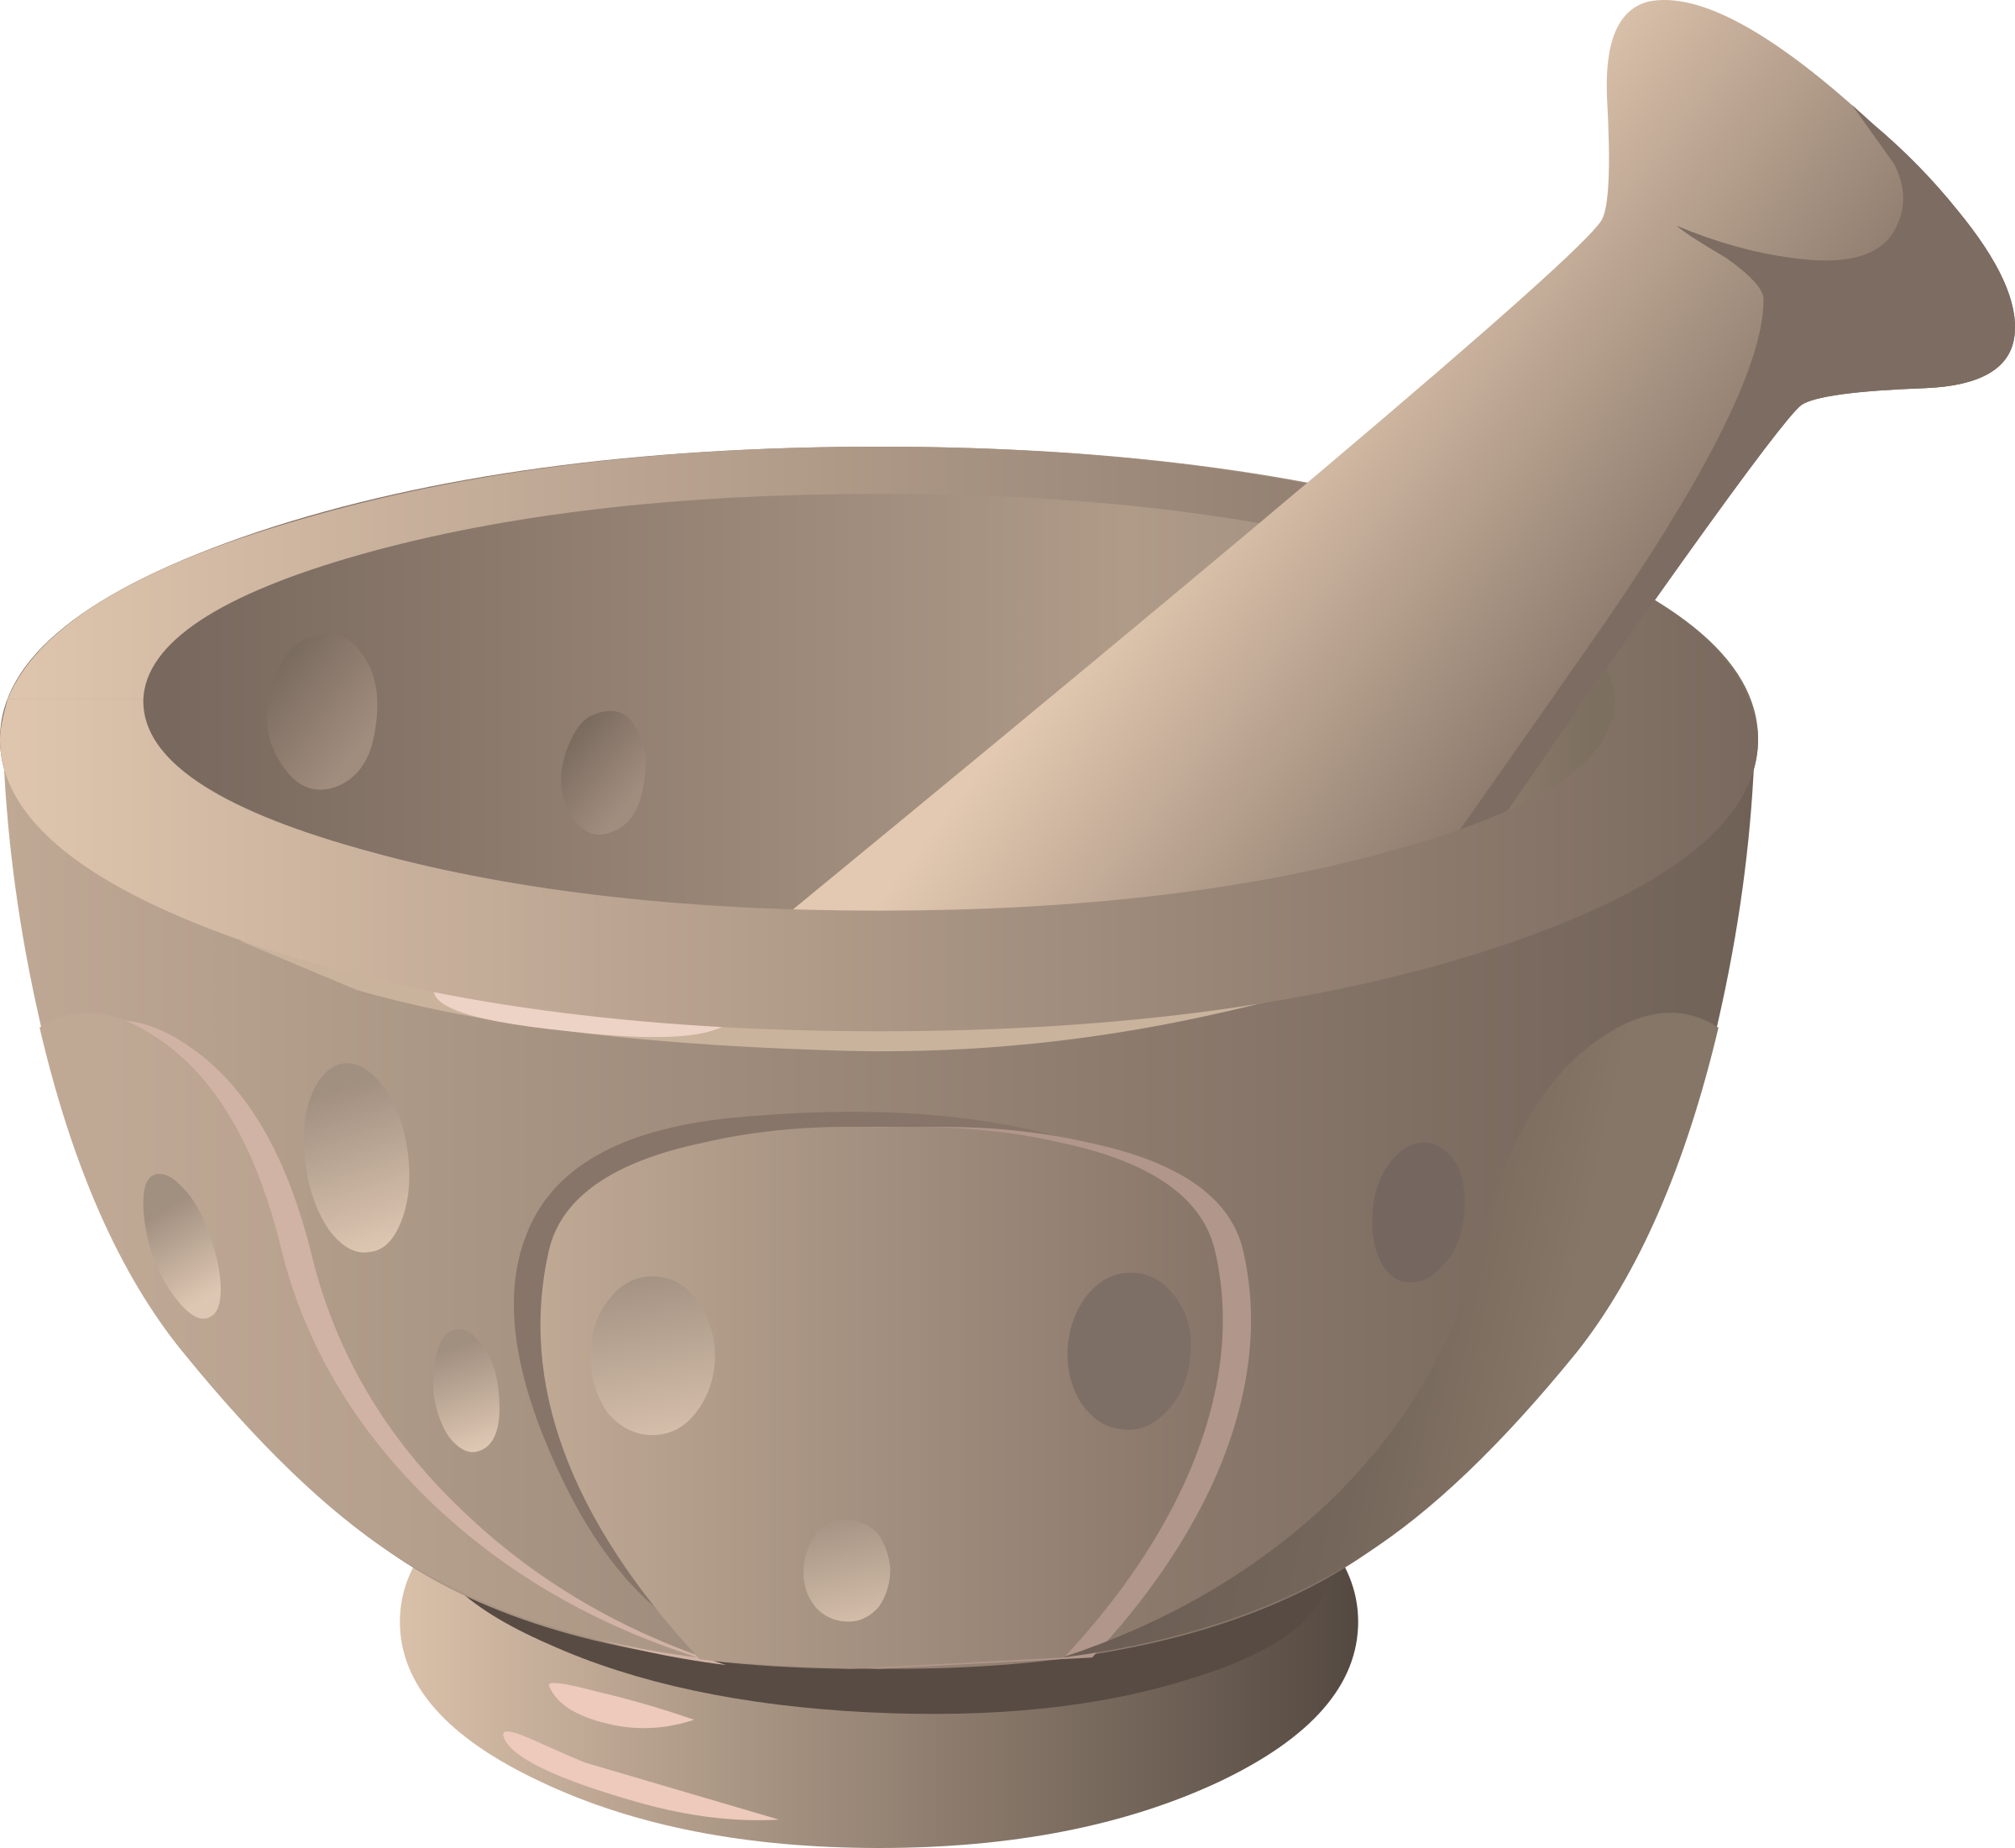 svg library stock Mortar and pestle clipart. Tools big image png